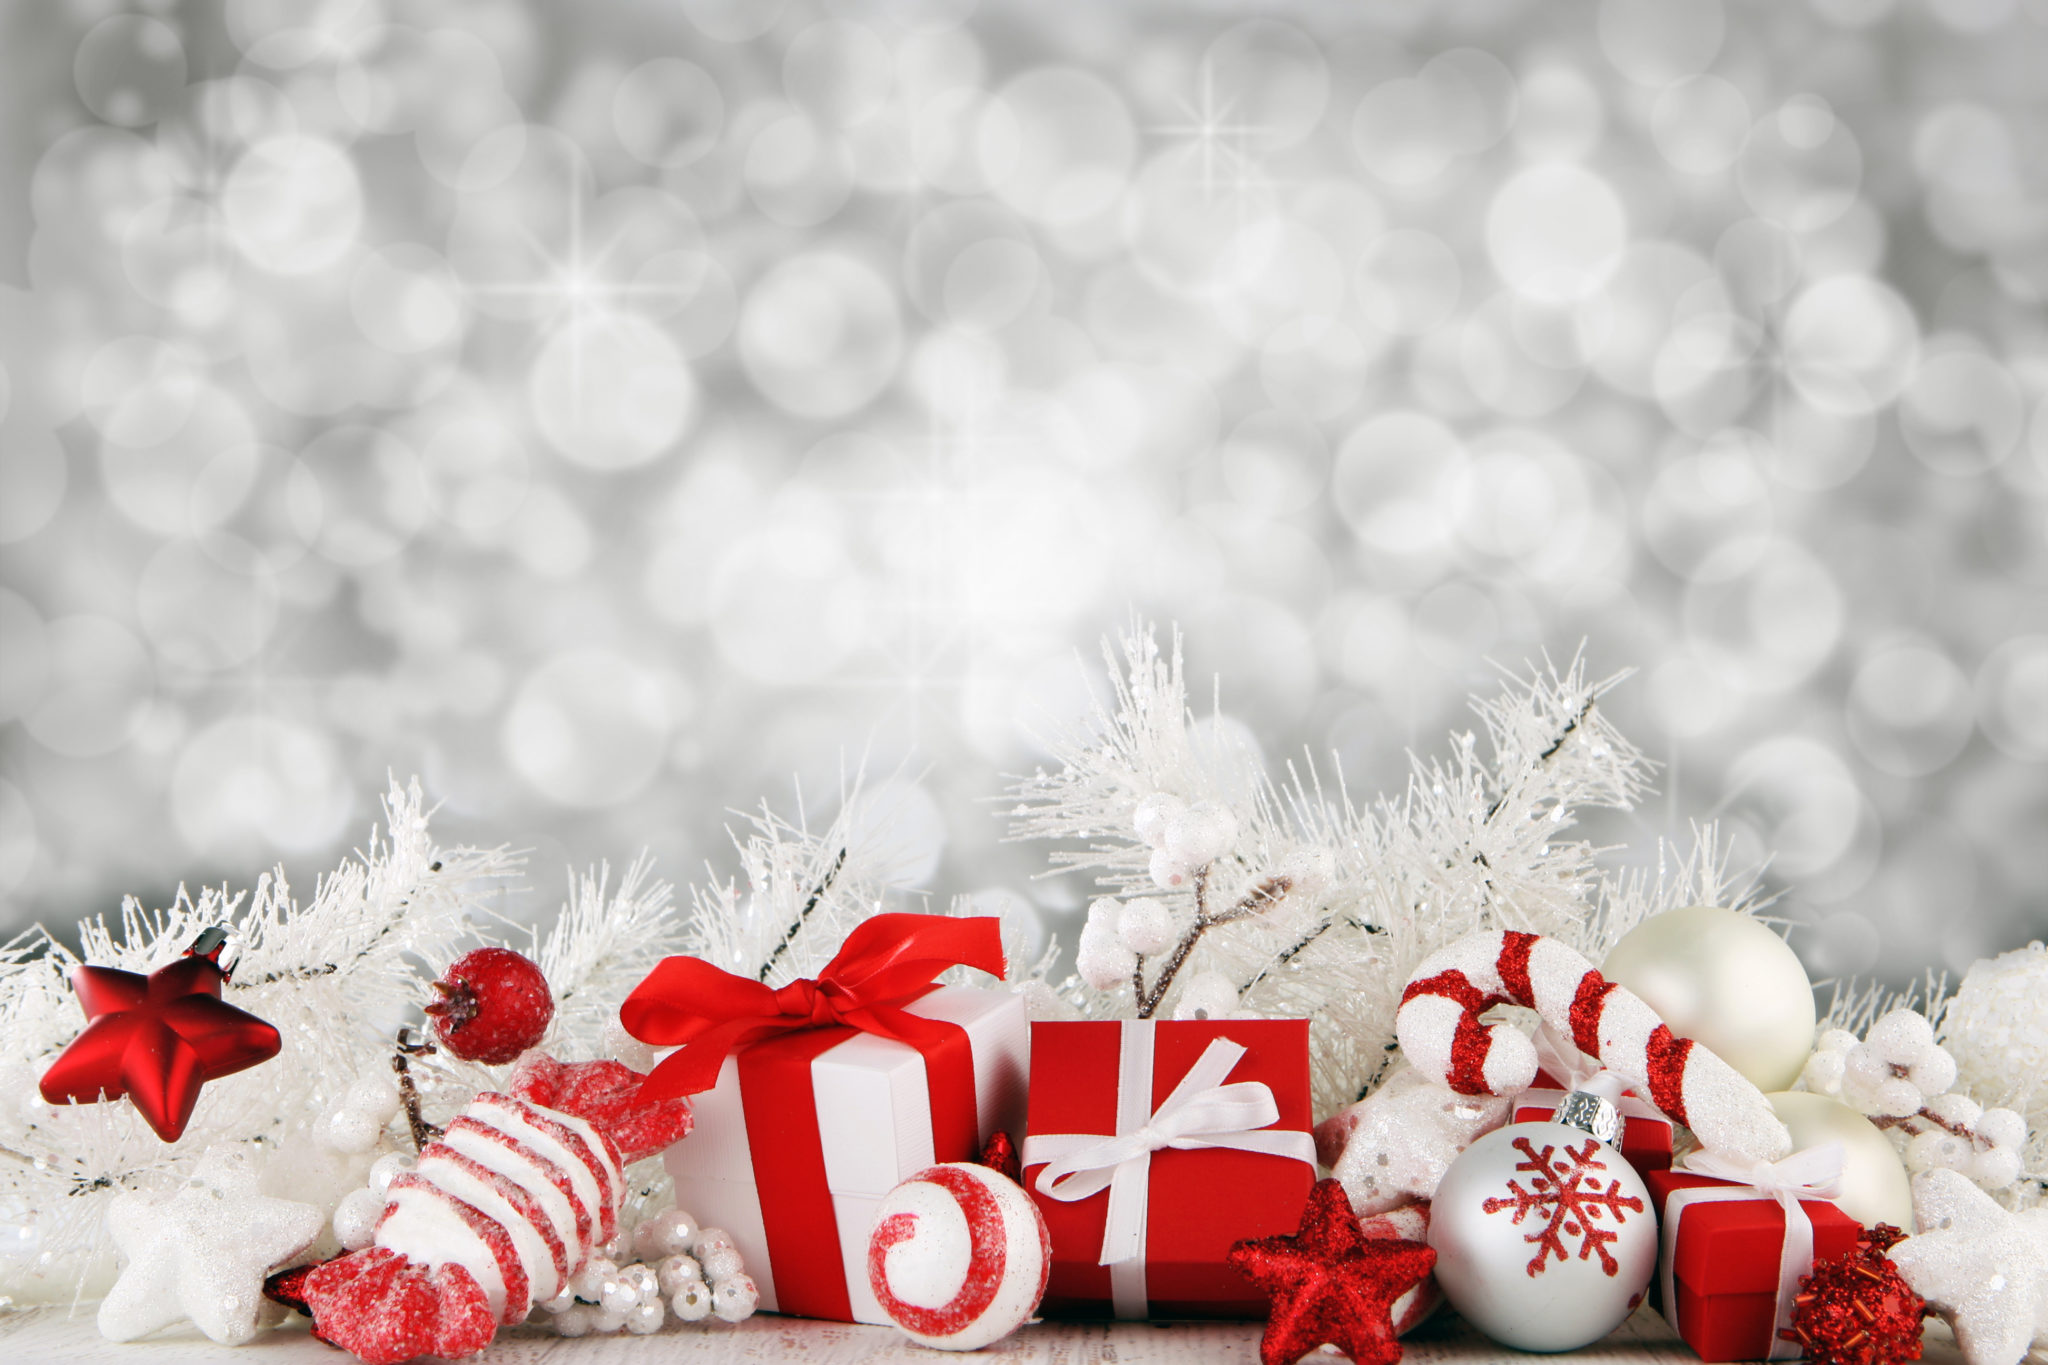 Christmas Background Images and Wallpaper - Trends in USA